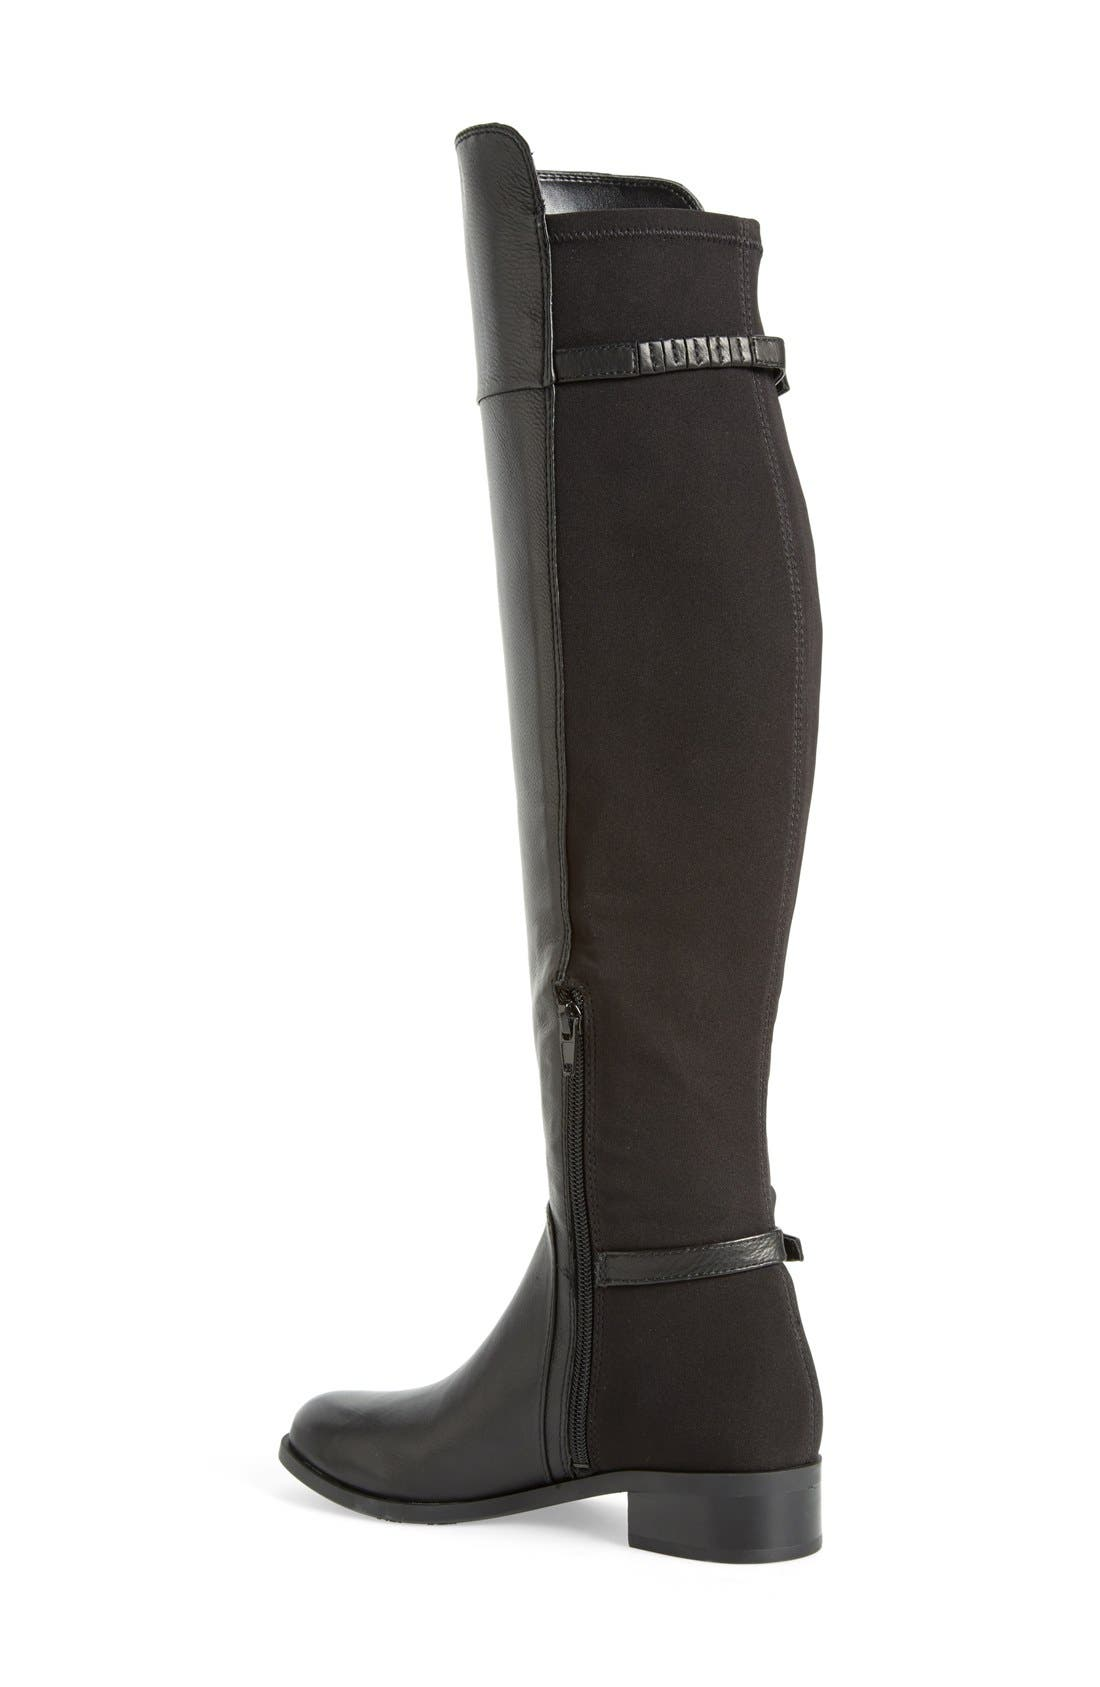 'Oliss' Over The Knee Boot,                             Alternate thumbnail 2, color,                             Black Leather